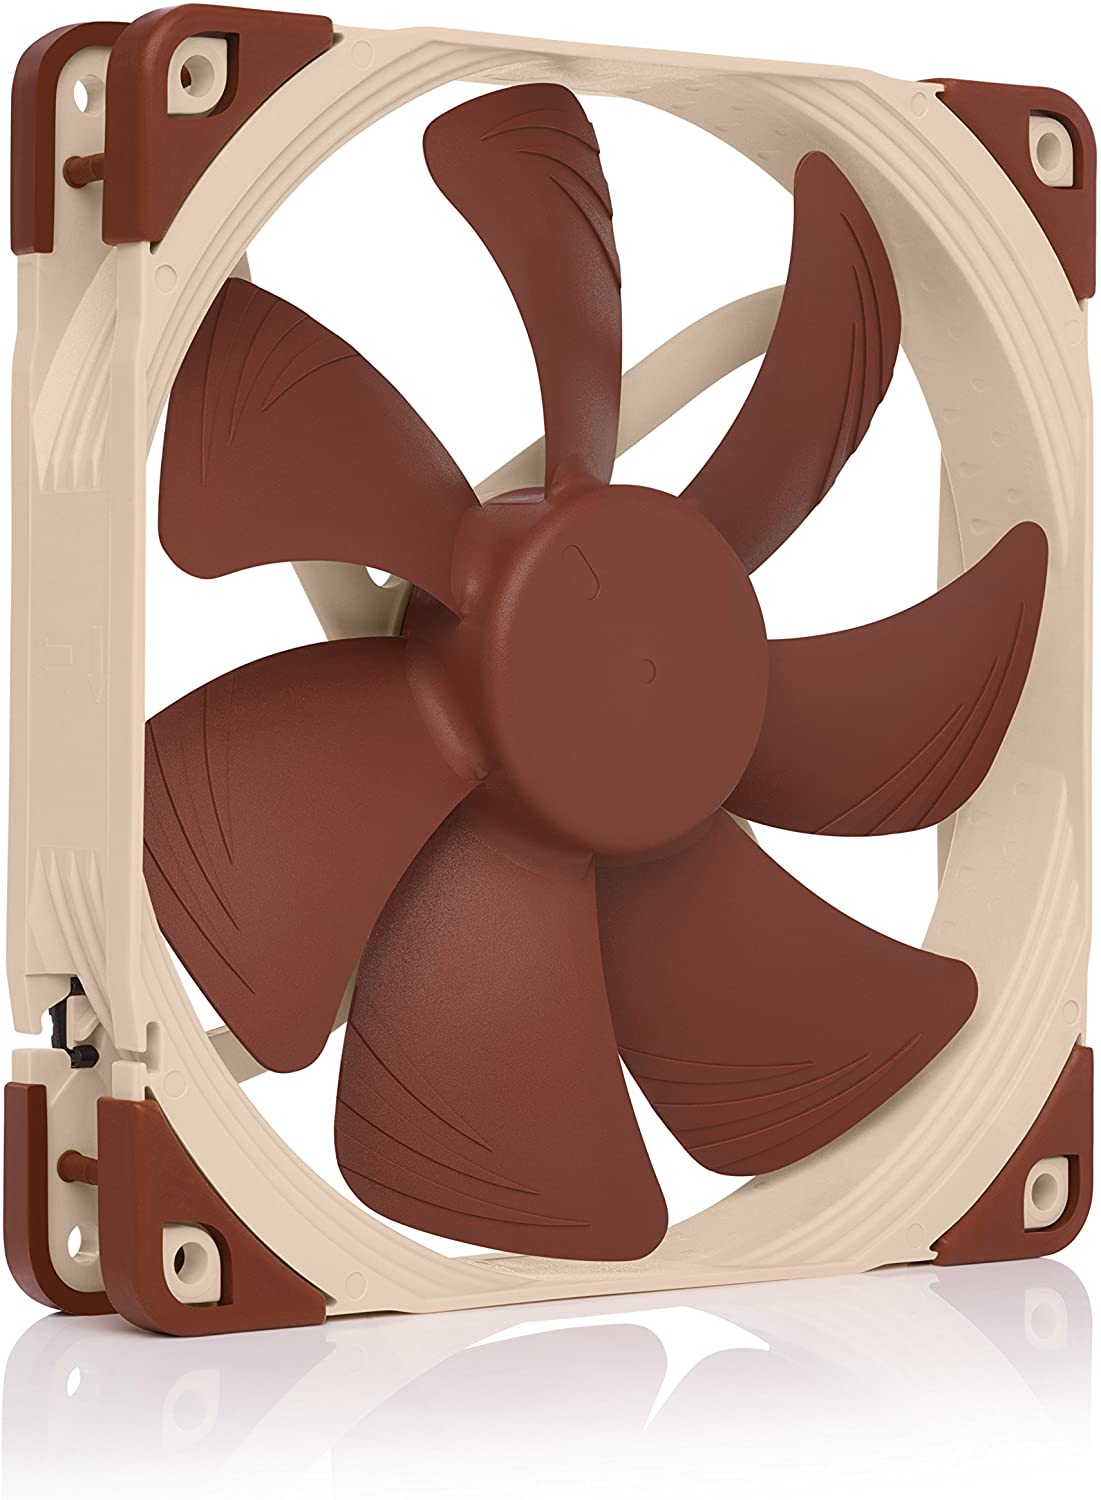 Noctua NF-A14 PWM, 4-Pin Premium Quiet Cooling Fan (140mm, Brown)